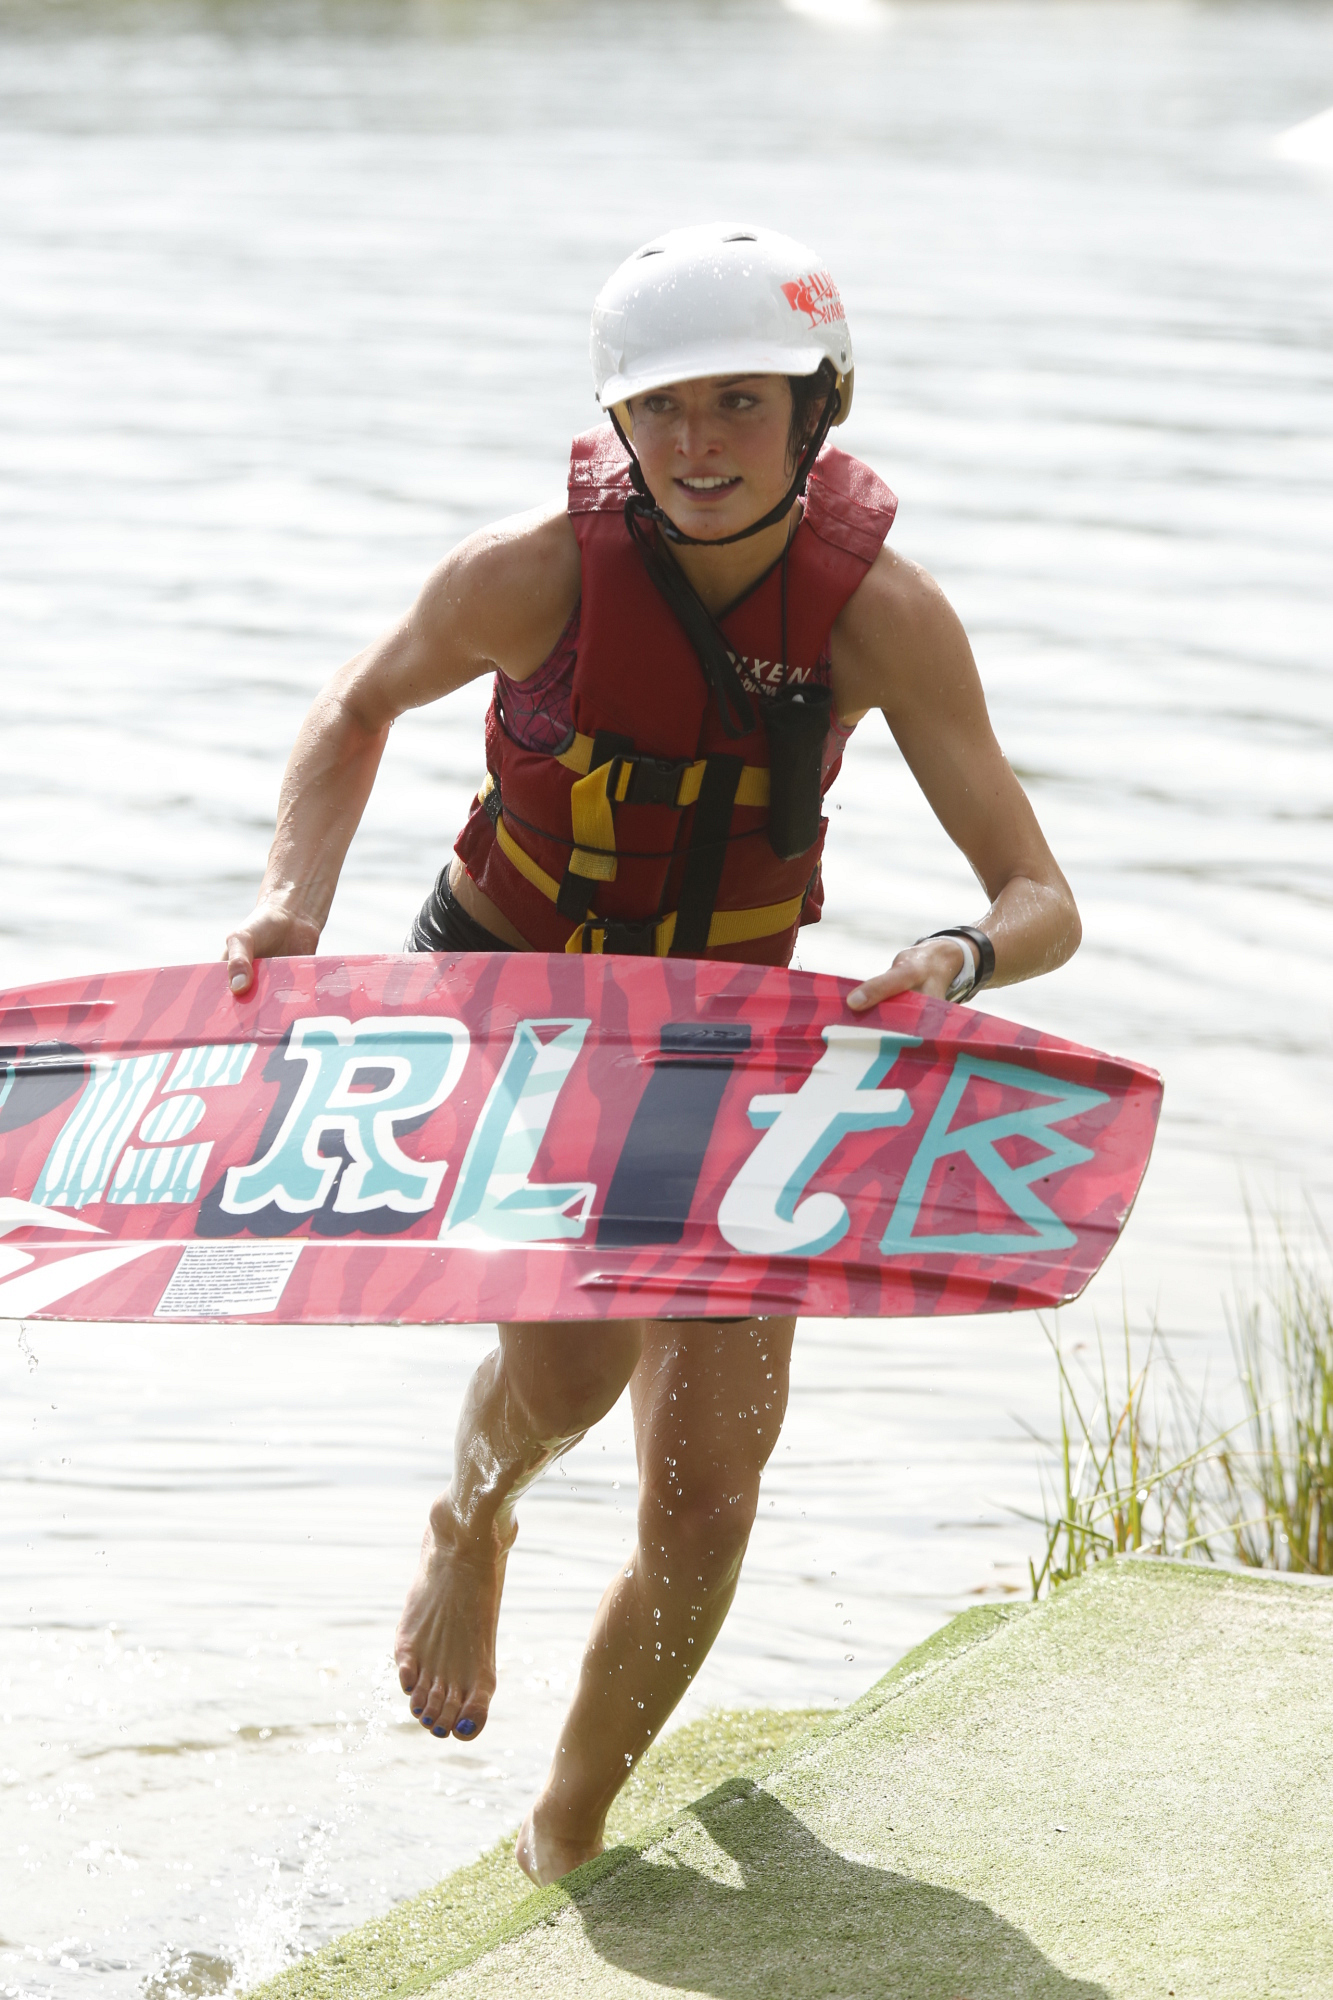 Aly with a wakeboard